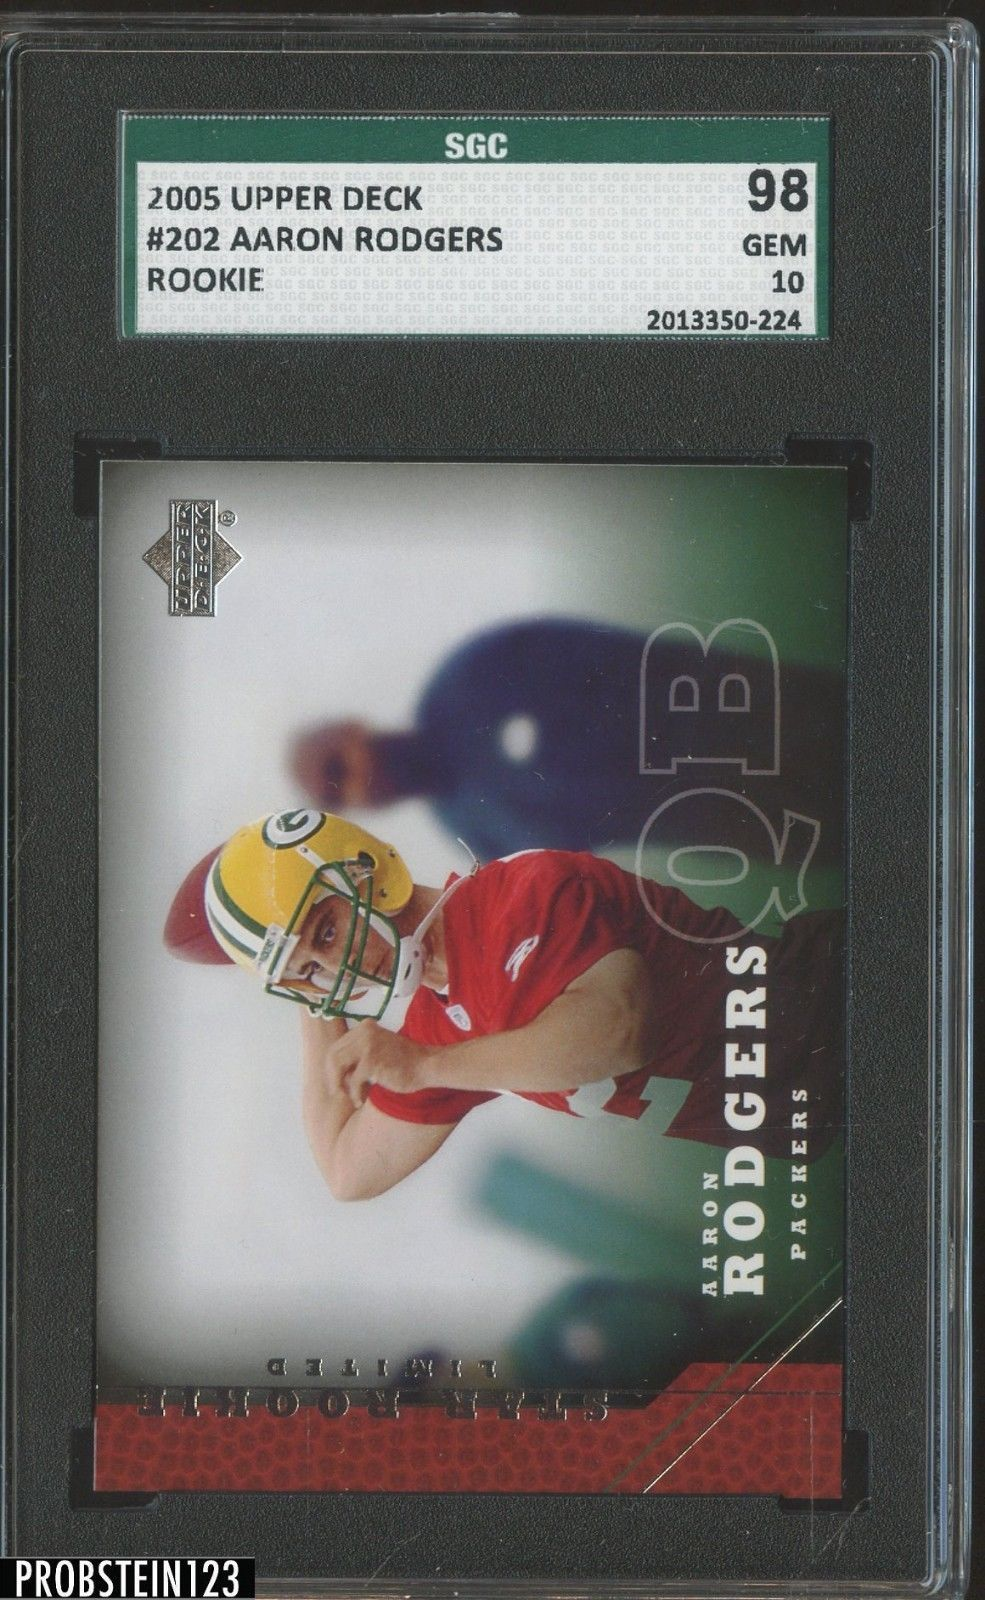 2005 Upper Deck 202 Aaron Rodgers Green Bay Packers Rc Rookie Sgc 98 Gem 10 Footballcards Sgc Graded Football Card Auctions From Probstein123 Pinterest